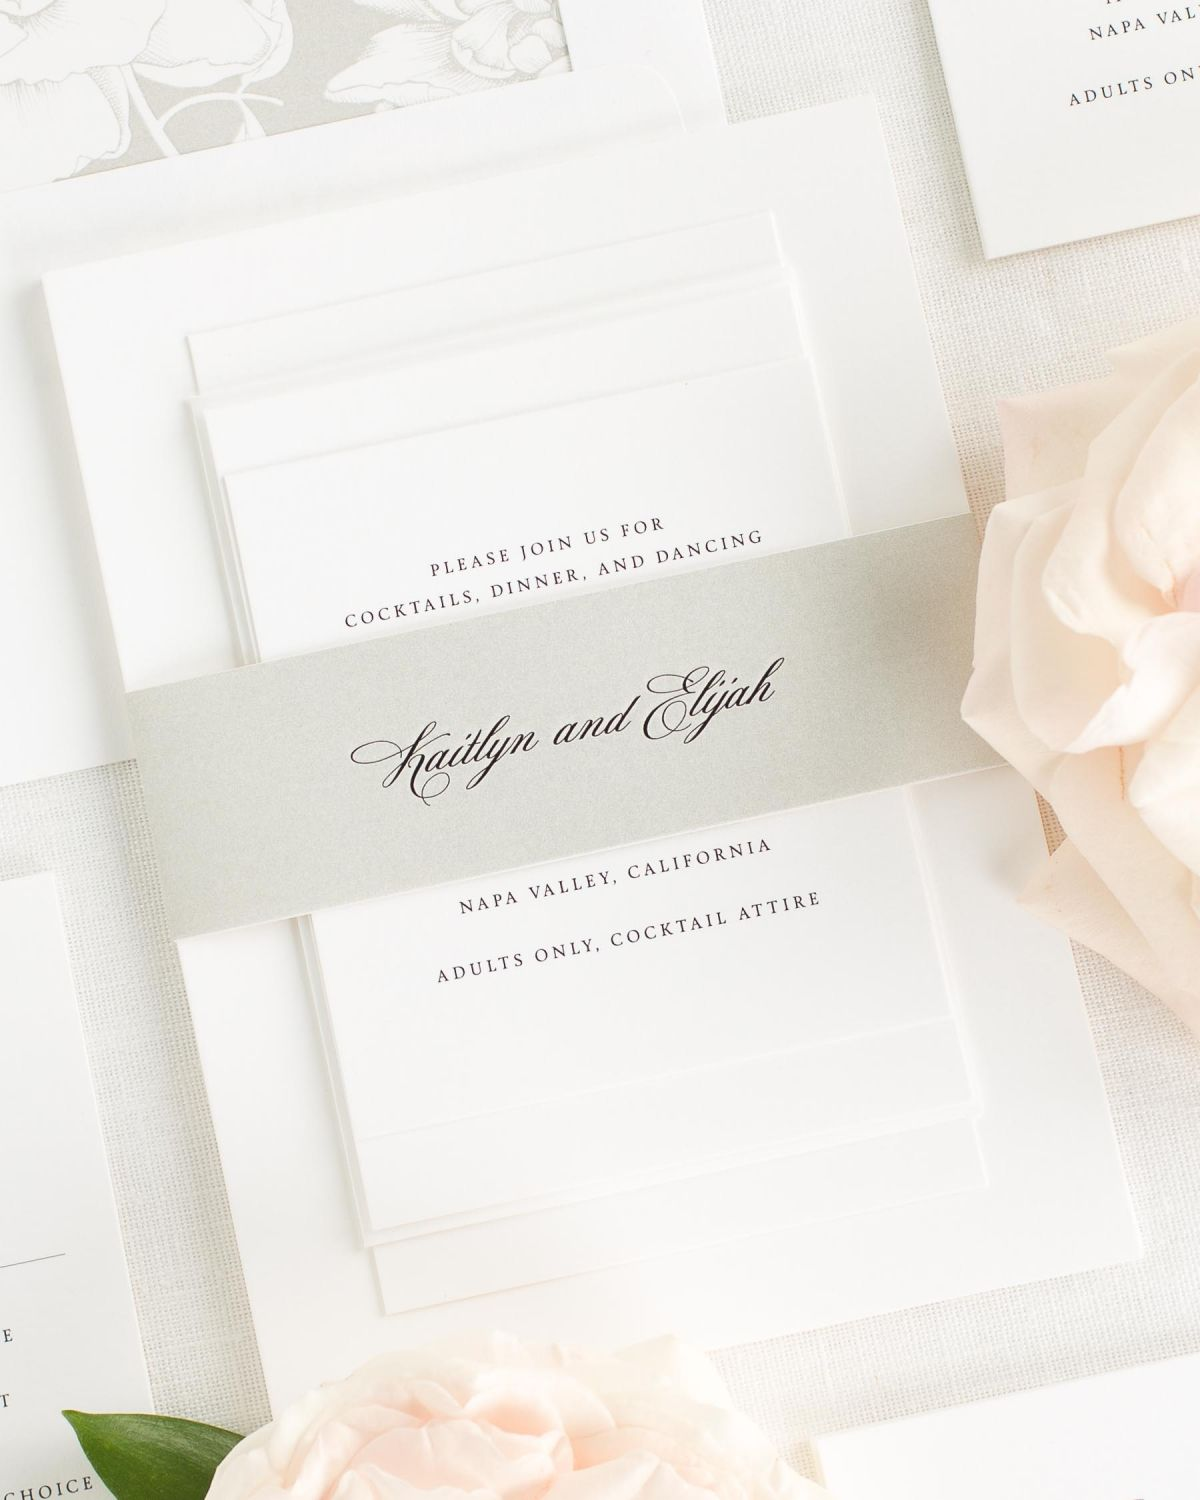 Stone Wedding Invitations with Belly Band and Blooms Envelope Liner